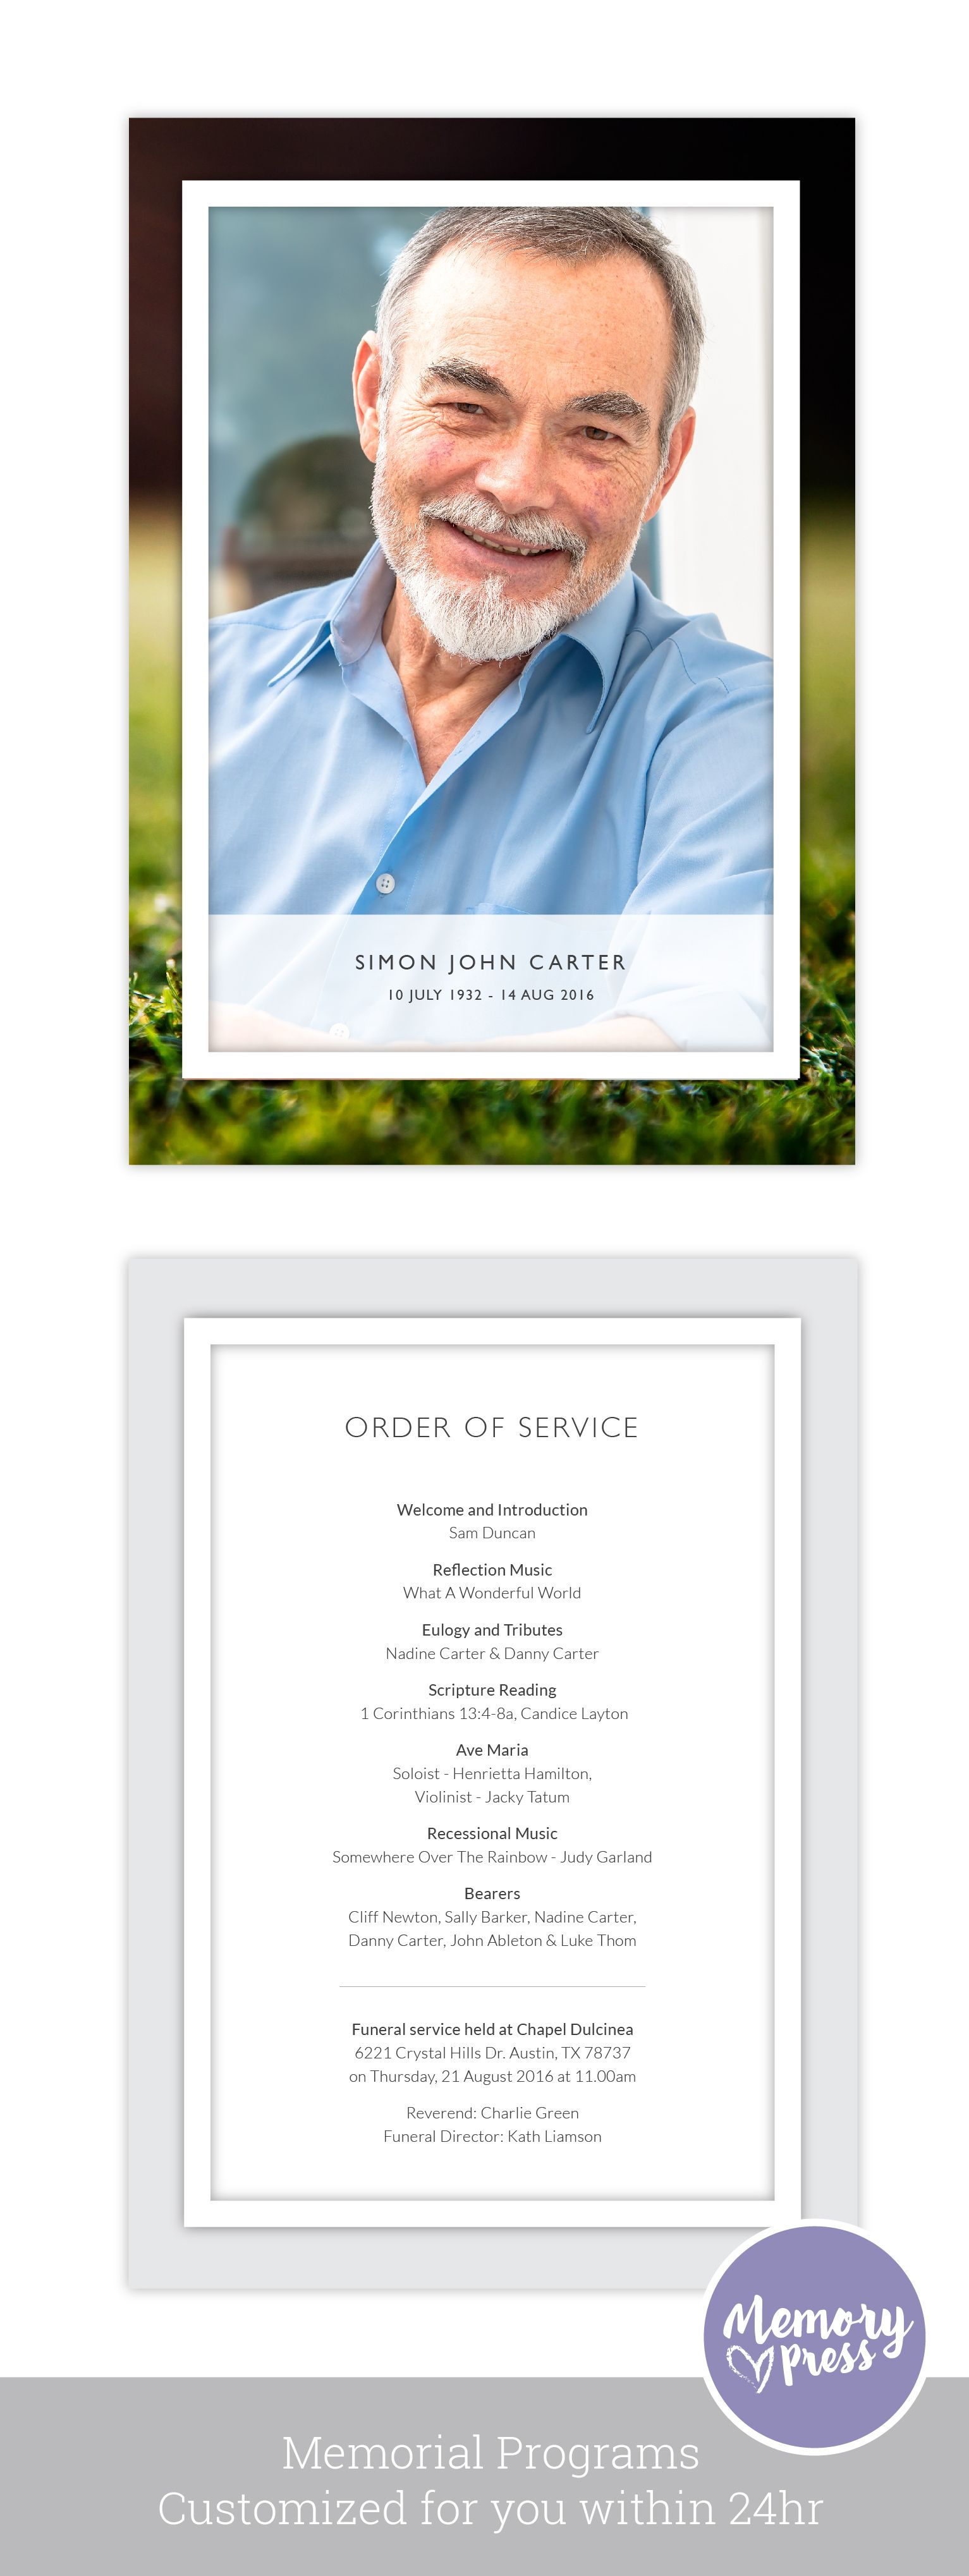 Funeral · Simple, Clean And Modern Memorial Program Template For Dad ...